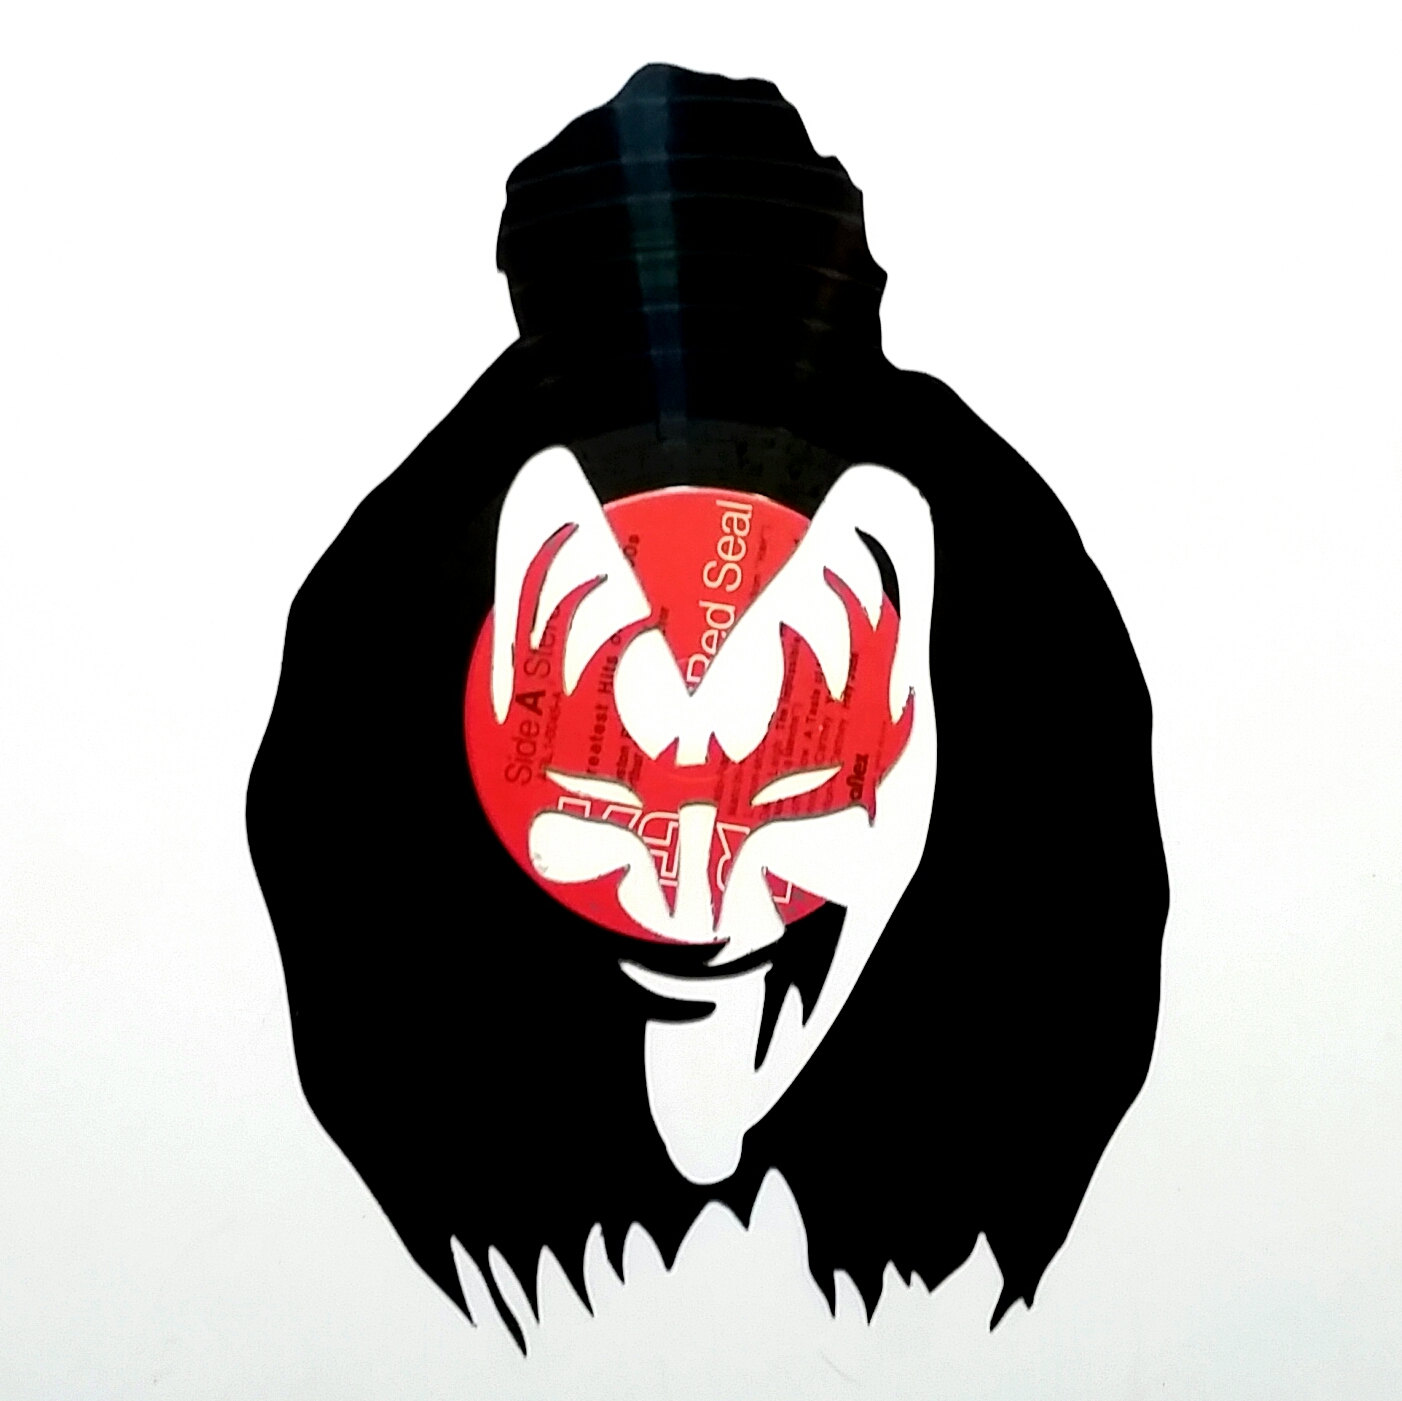 1402x1401 Gene Simmons, Kiss, Tongue Out Silhouette Vinyl Record Art.